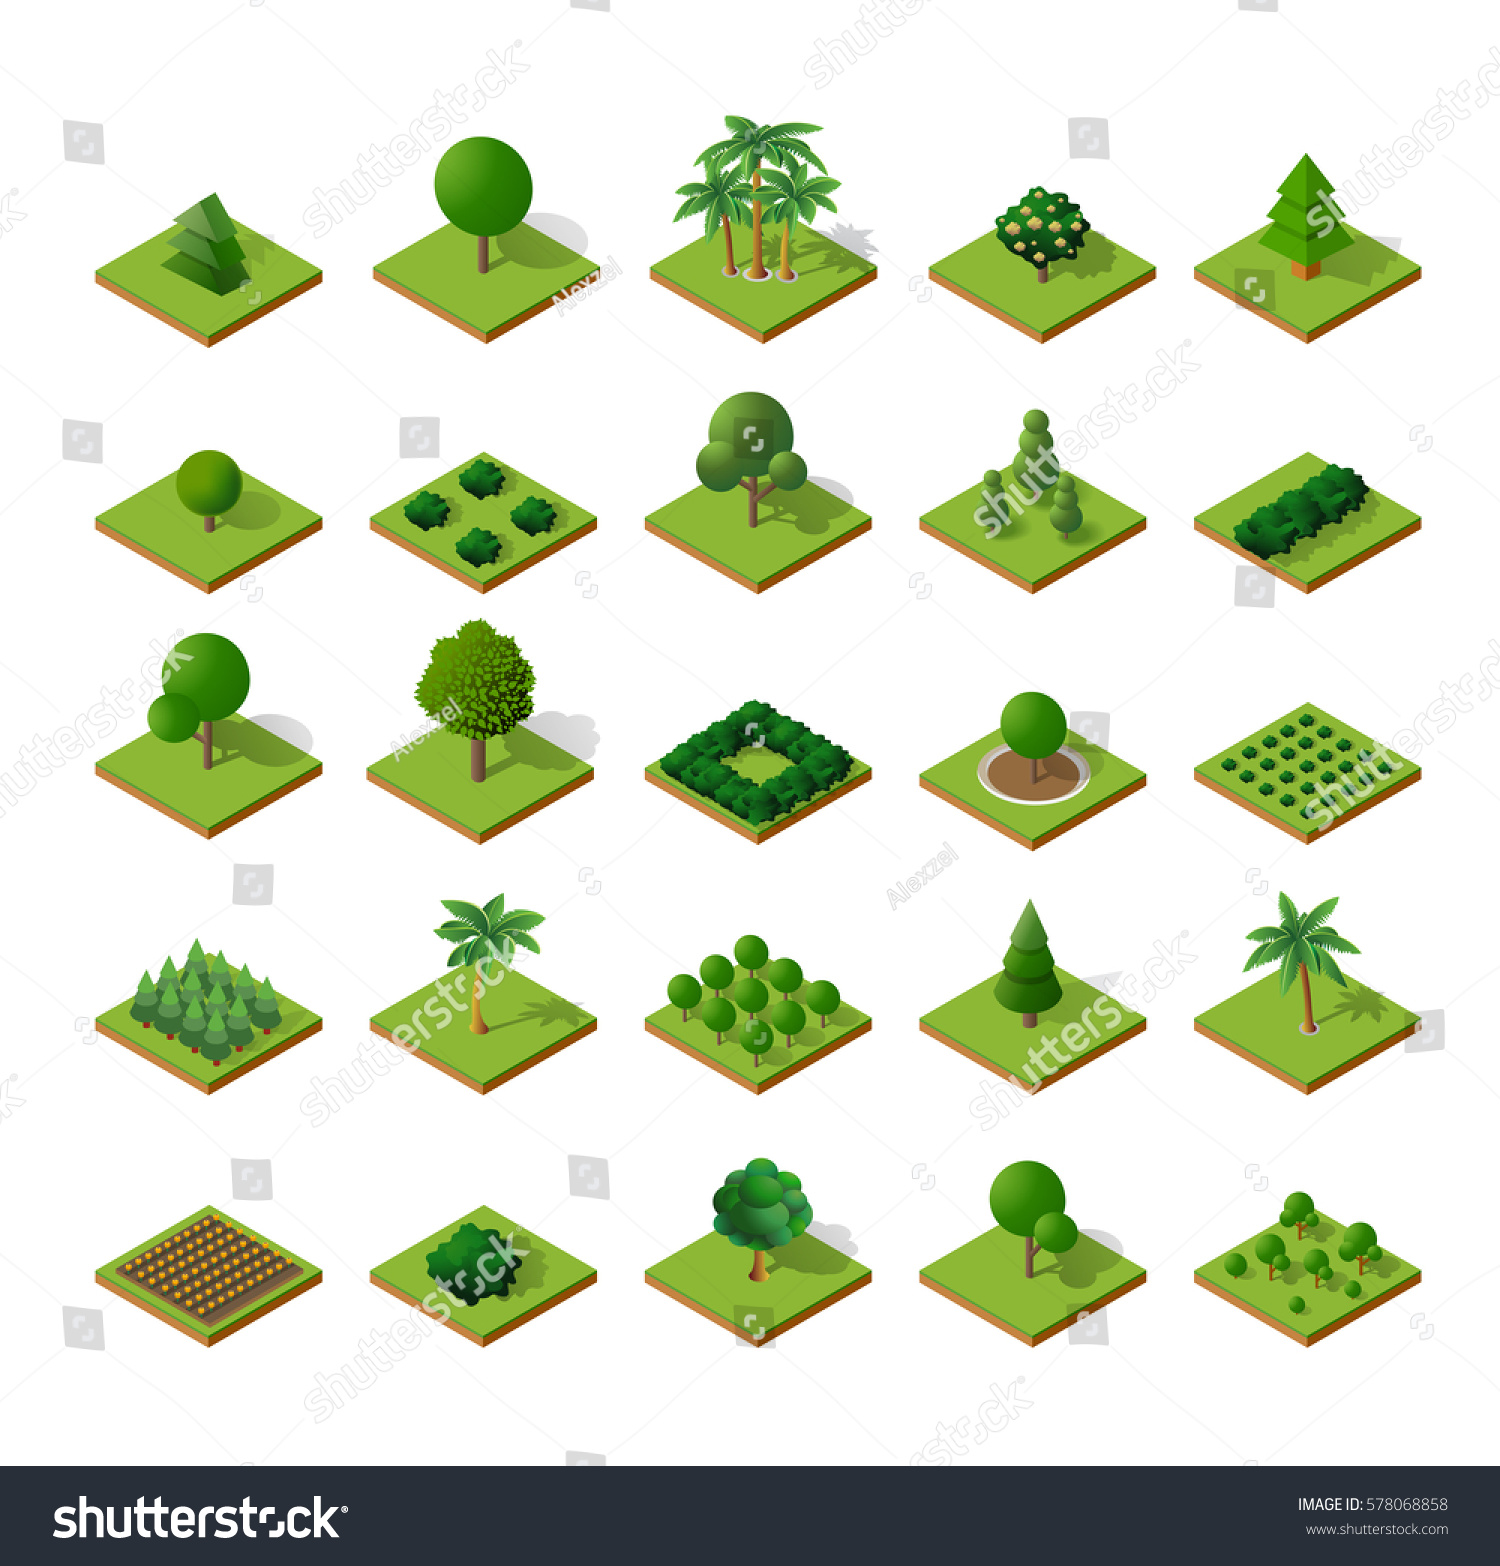 More similar stock images of 3d landscape with fall tree - Set Isometric 3d Trees Forest Nature Elements White Background For Landscape Design Vector Illustration Isolated